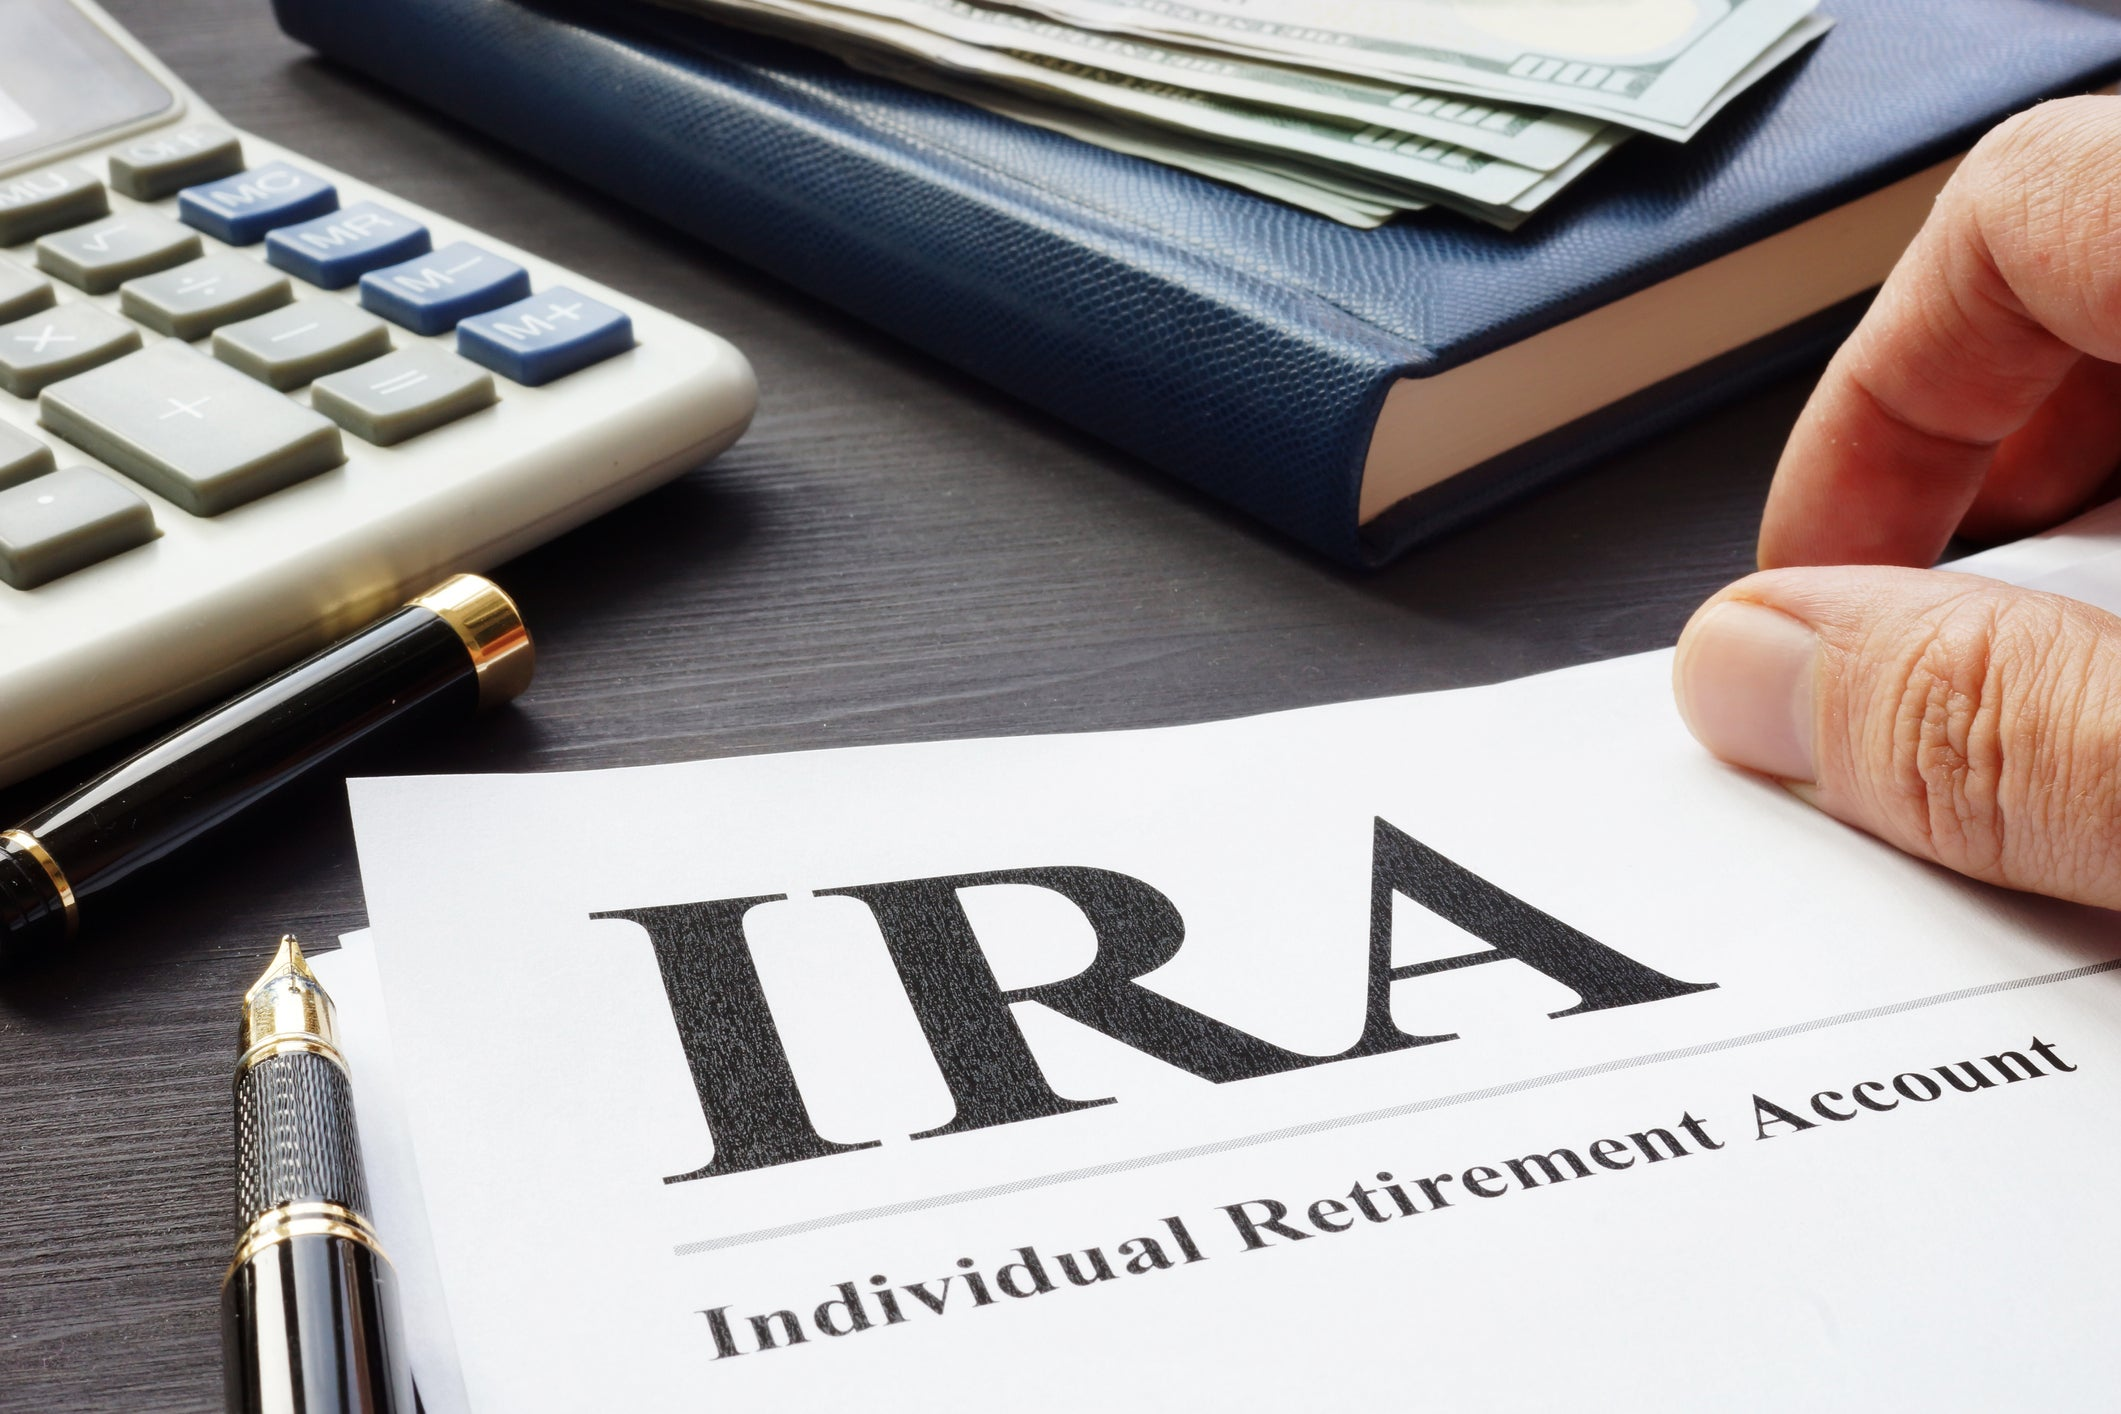 3 Reasons to Save in an IRA Instead of Your Employer's 401(k)